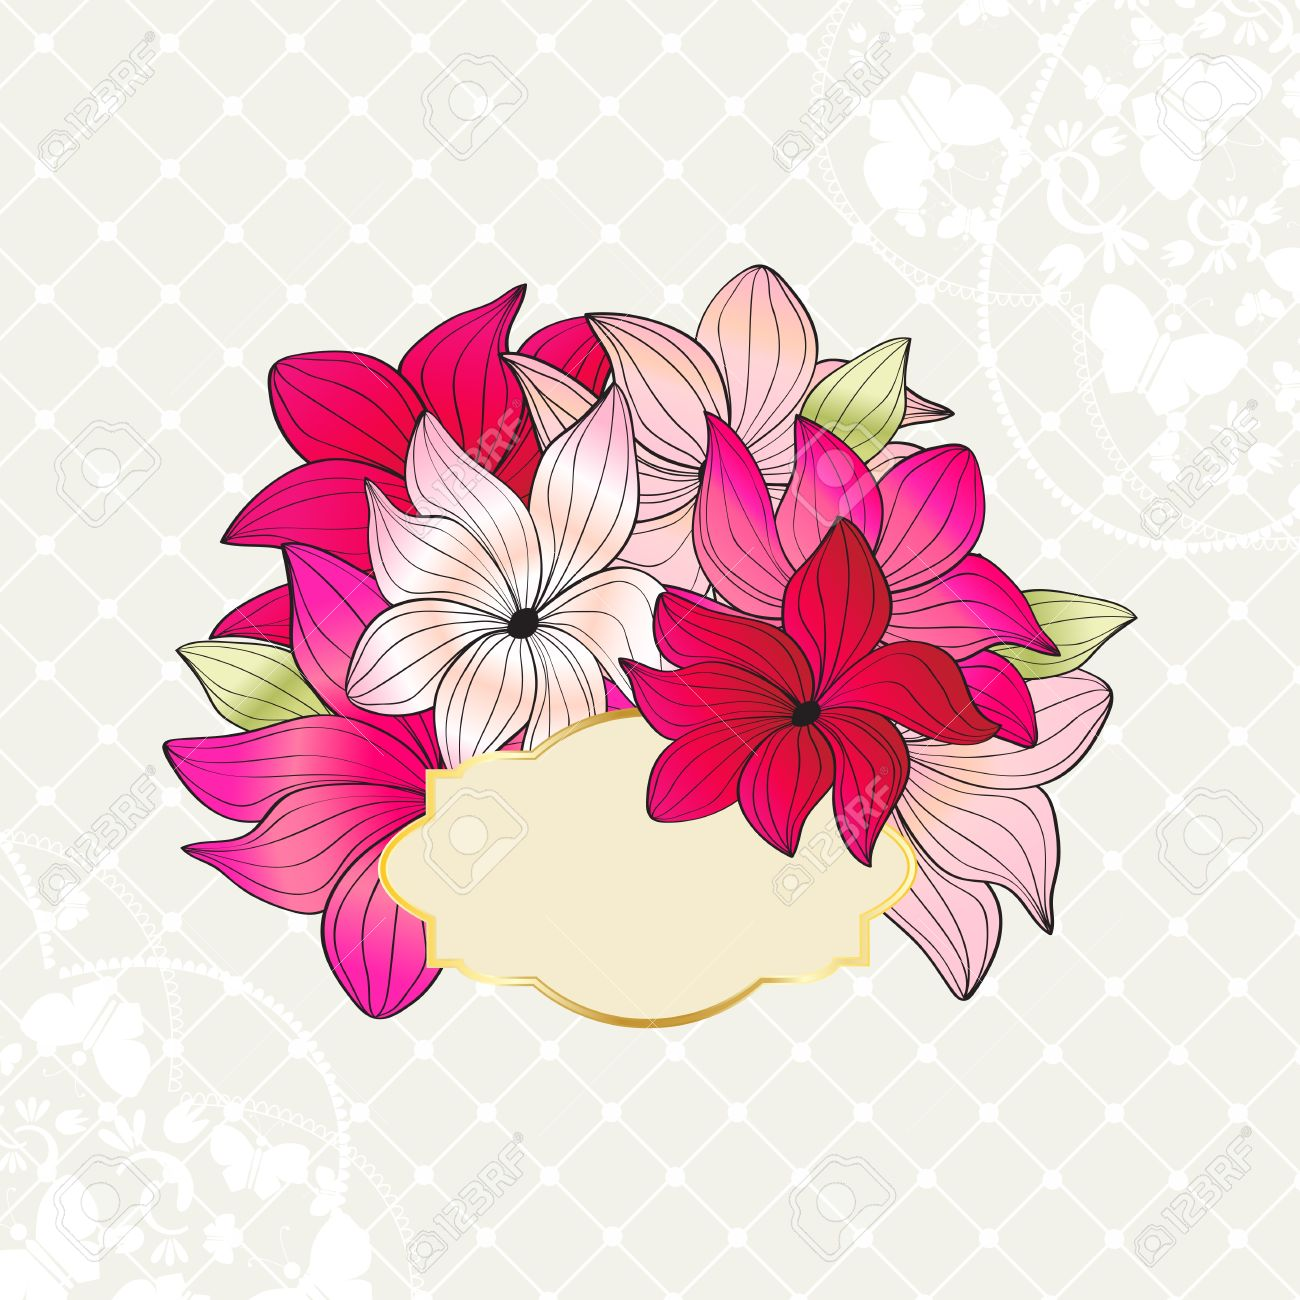 Greeting card design with bouquet of pretty pink flowers with greeting card design with bouquet of pretty pink flowers with an ornate gold rimmed label or izmirmasajfo